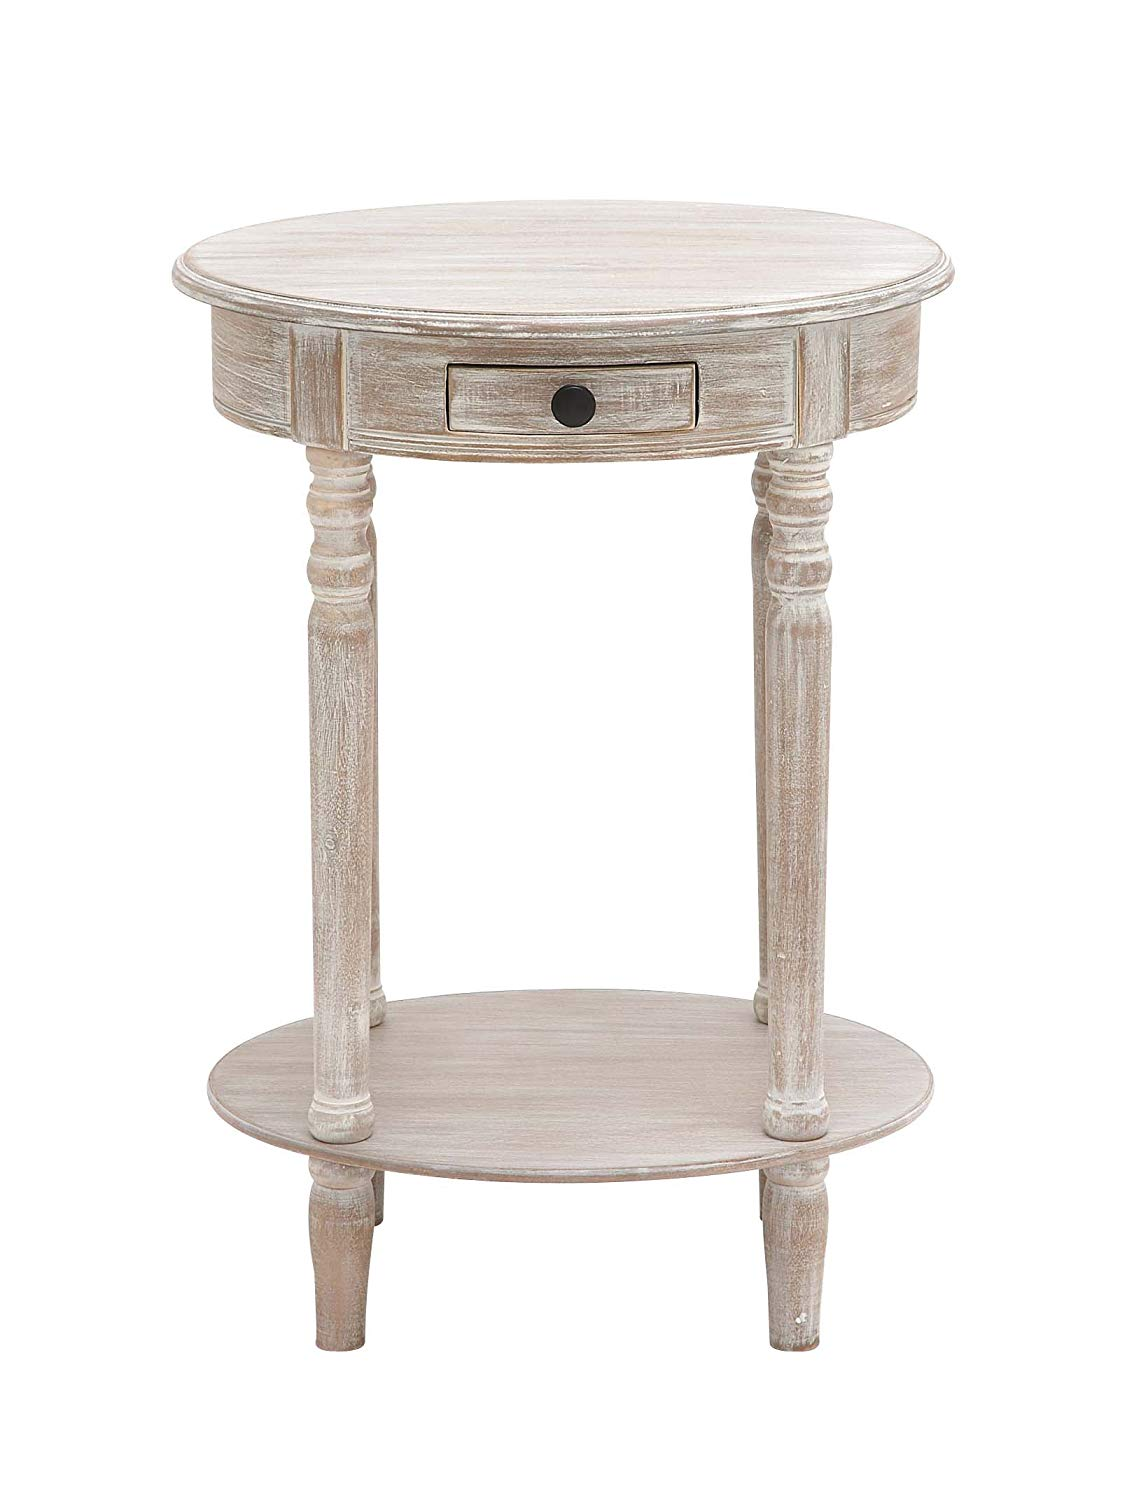 benzara the petite wood oval accent table small inch off white kitchen dining marble coffee cool lamps keter ice cooler garden chairs contemporary side tables red oriental lamp